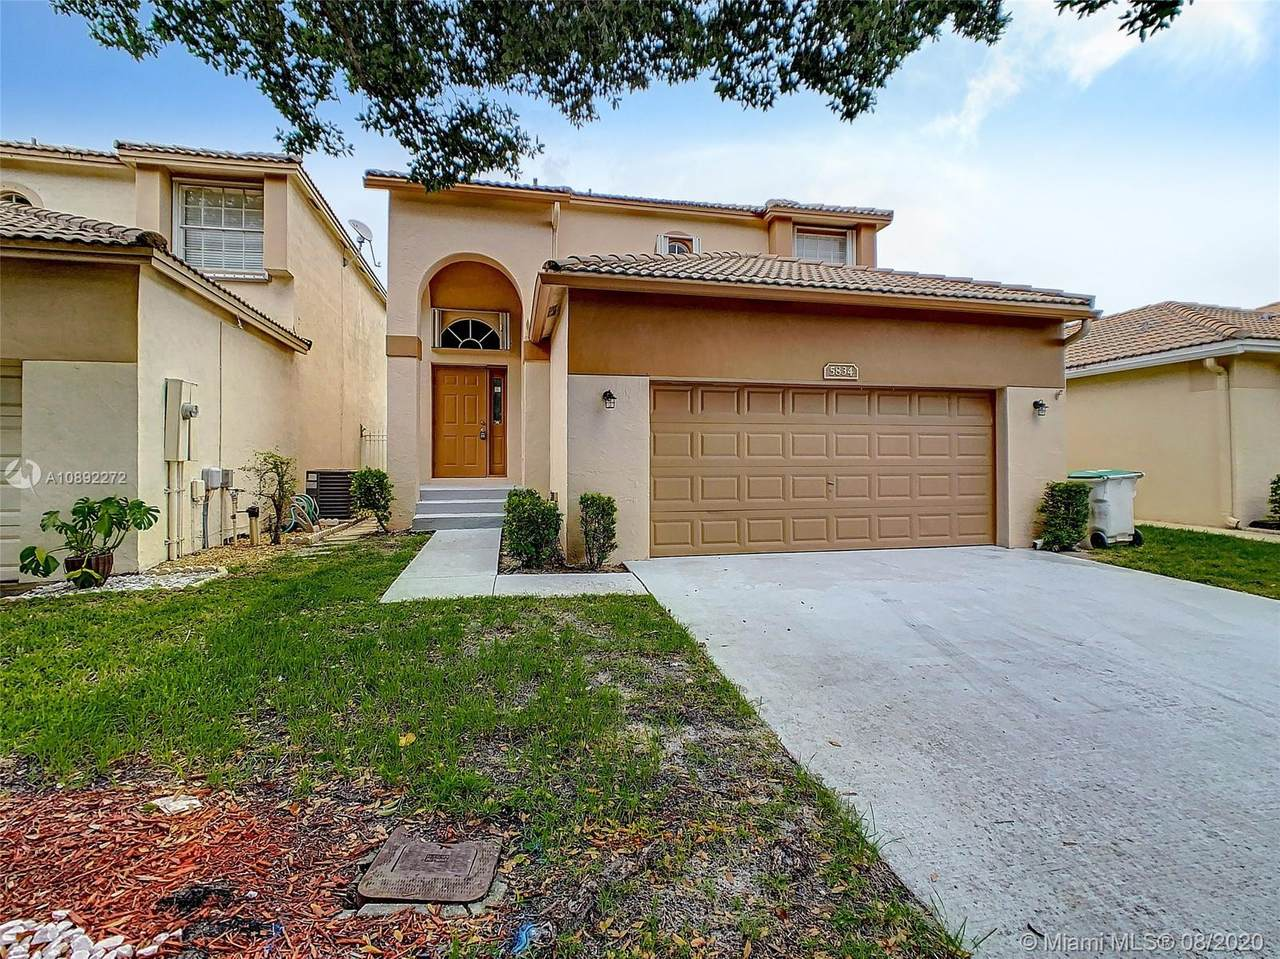 5834 Eagle Cay Cir - Photo 1